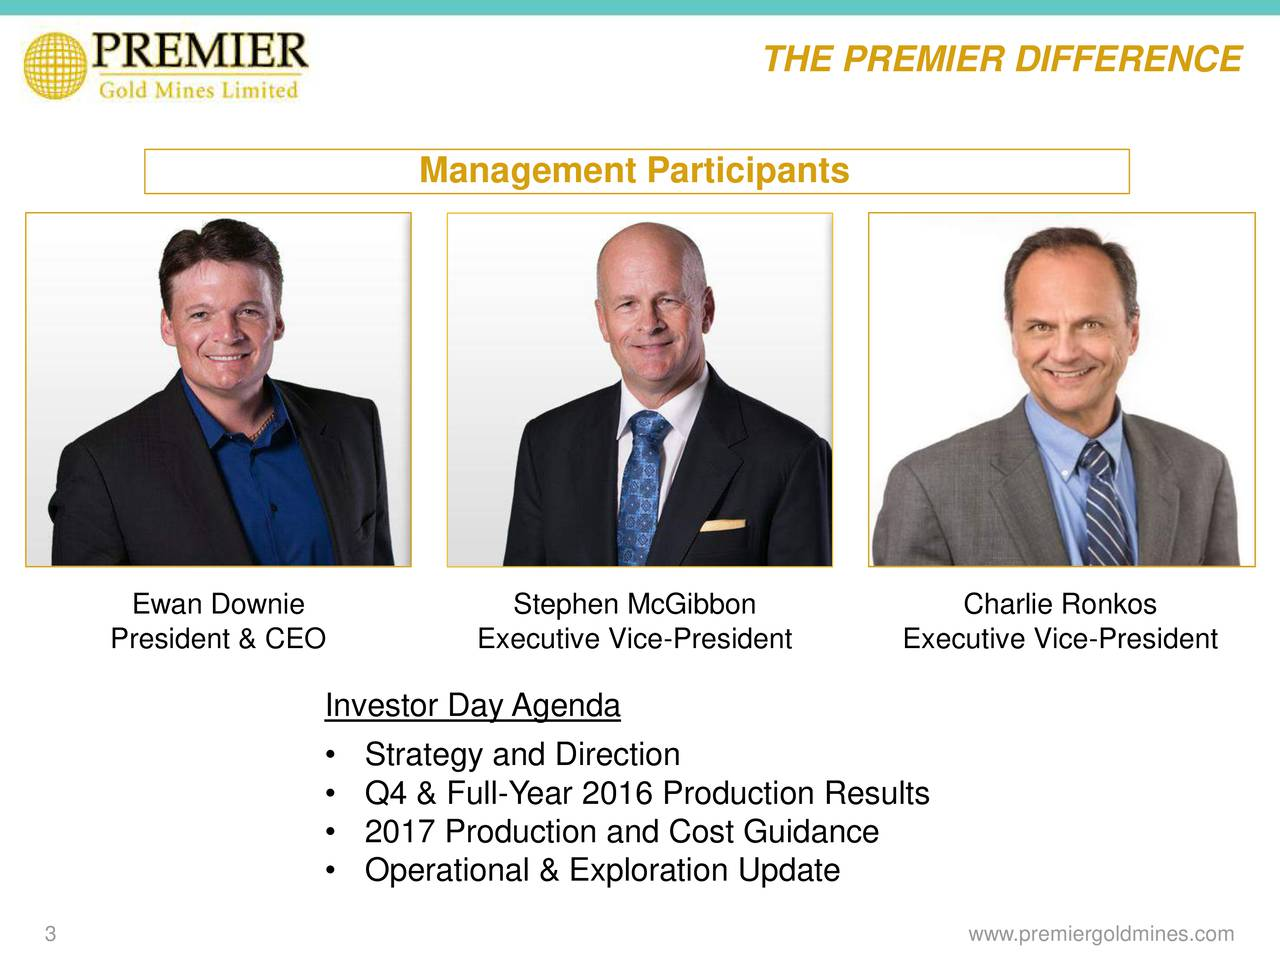 Management Participants Ewan Downie Stephen McGibbon Charlie Ronkos President & CEO Executive Vice-President Executive Vice-President Investor Day Agenda Strategy and Direction Q4 & Full-Year 2016 Production Results 2017 Production and Cost Guidance Operational & Exploration Update 3 www.premiergoldmines.com